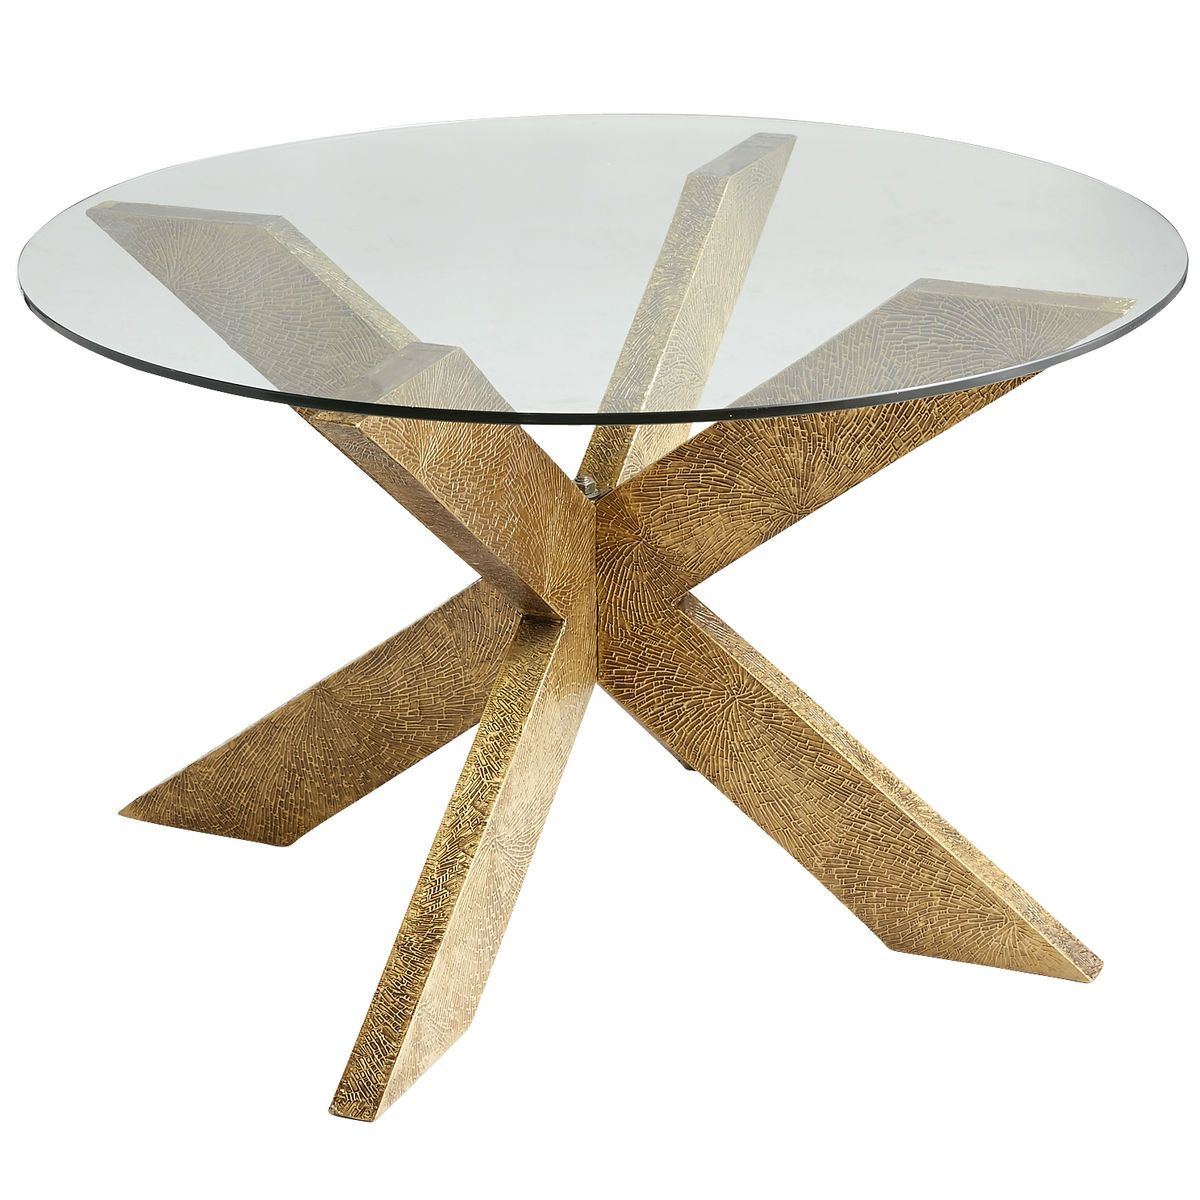 simon brass coffee table base pier imports side tables nate berkus round gold accent with marble top ashley furniture set storage cube drum throne pearl metal dining legs diy